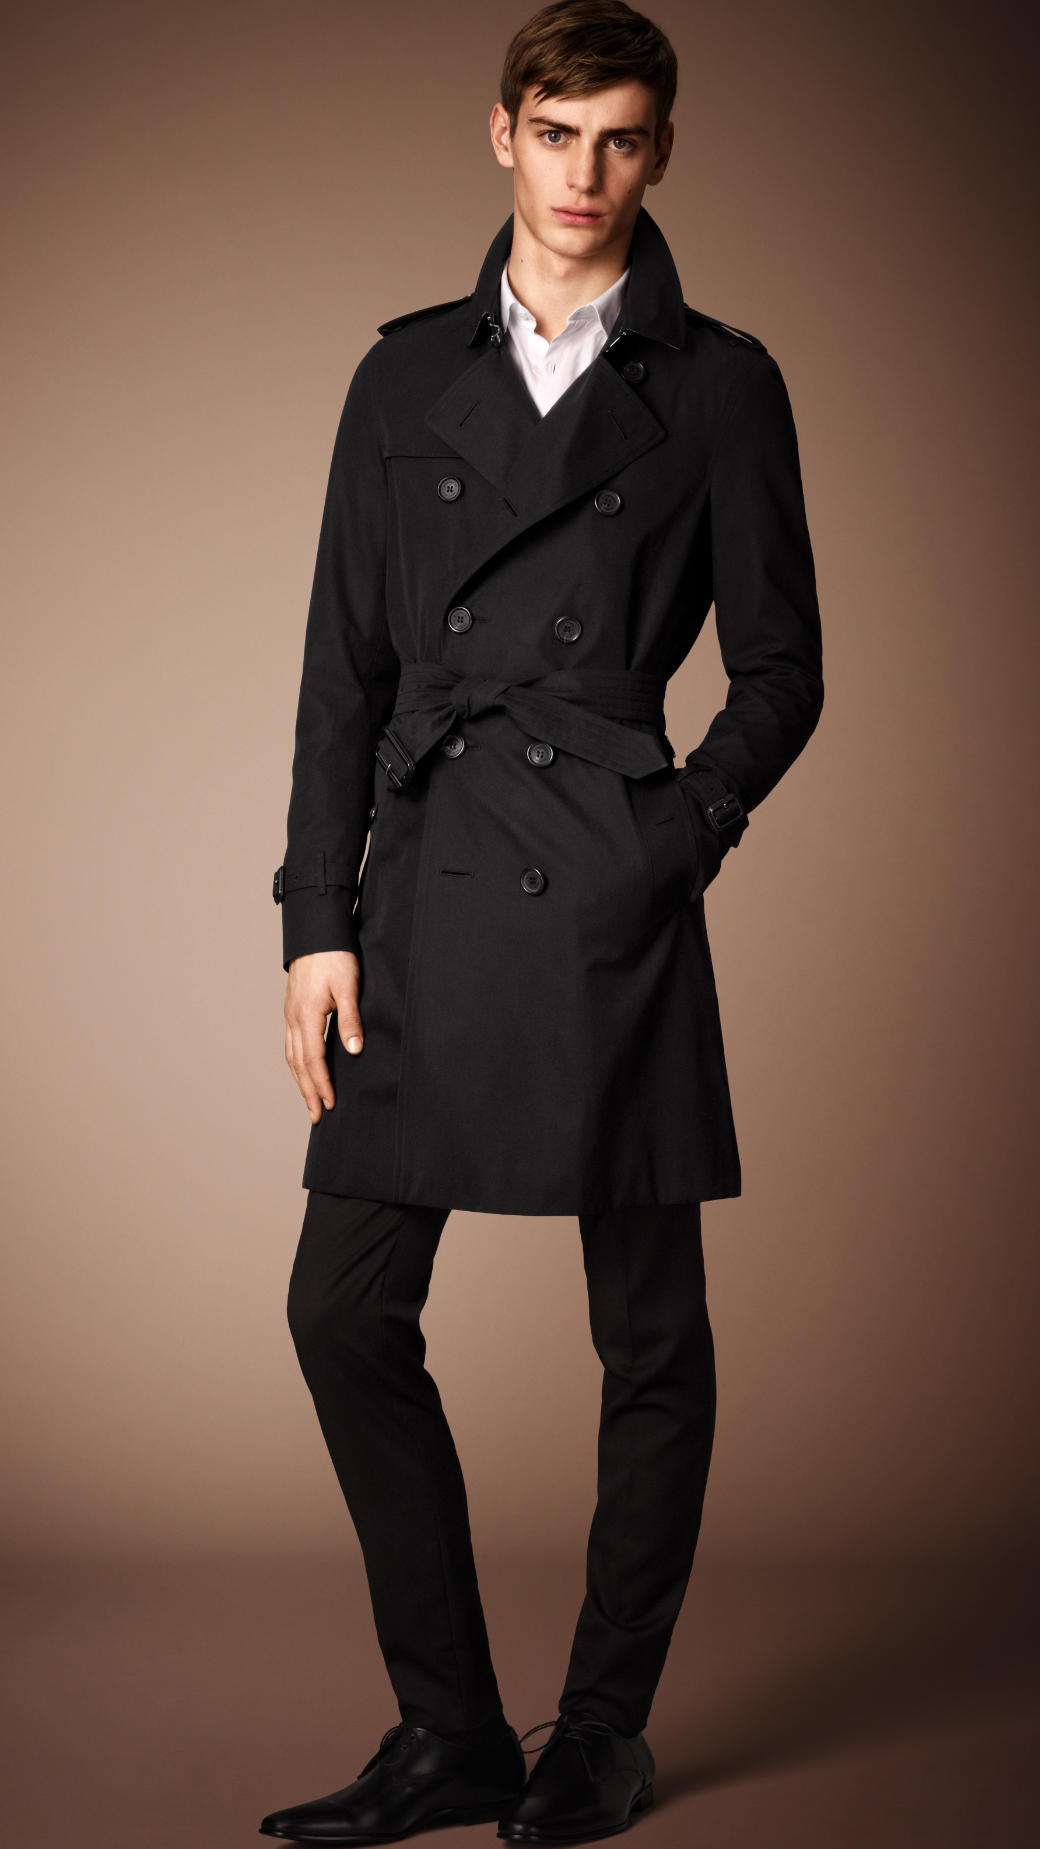 burberry mens trench coat outlet k622  6 Men S Trench Coats To Consider This Autumn Fashionbeans